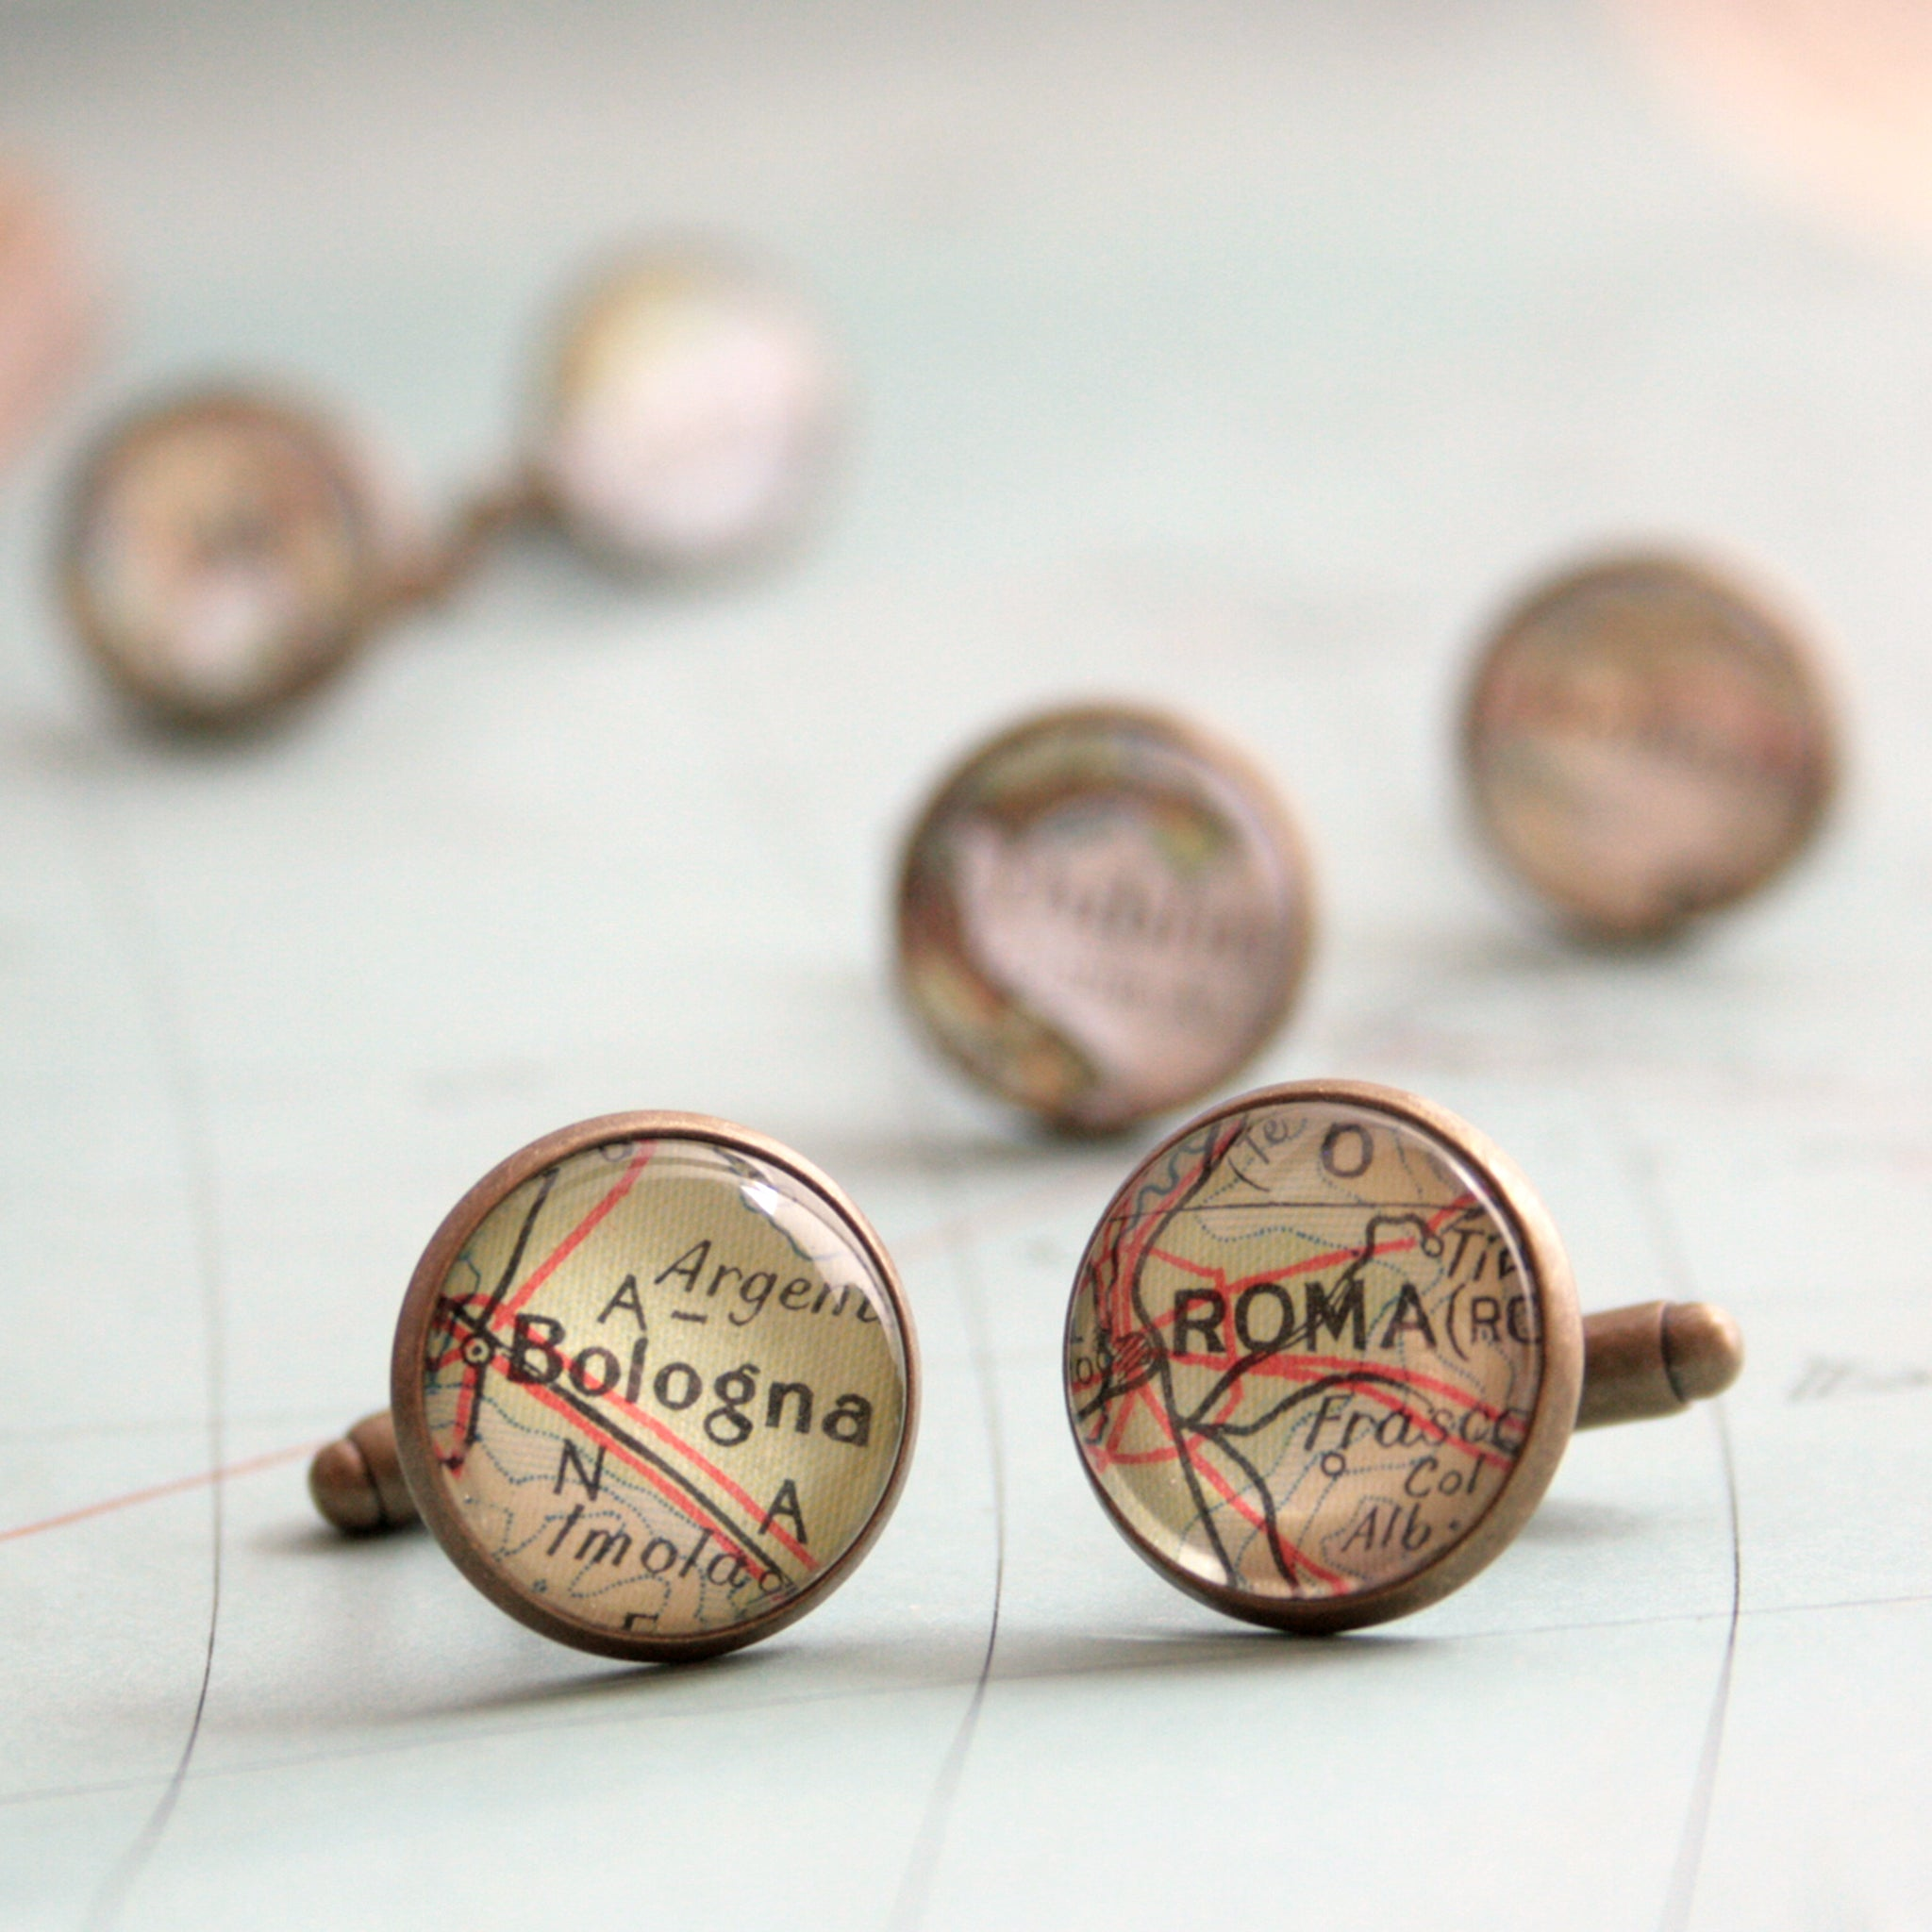 Personalised map cufflinks in antique bronze color featuring custom maps